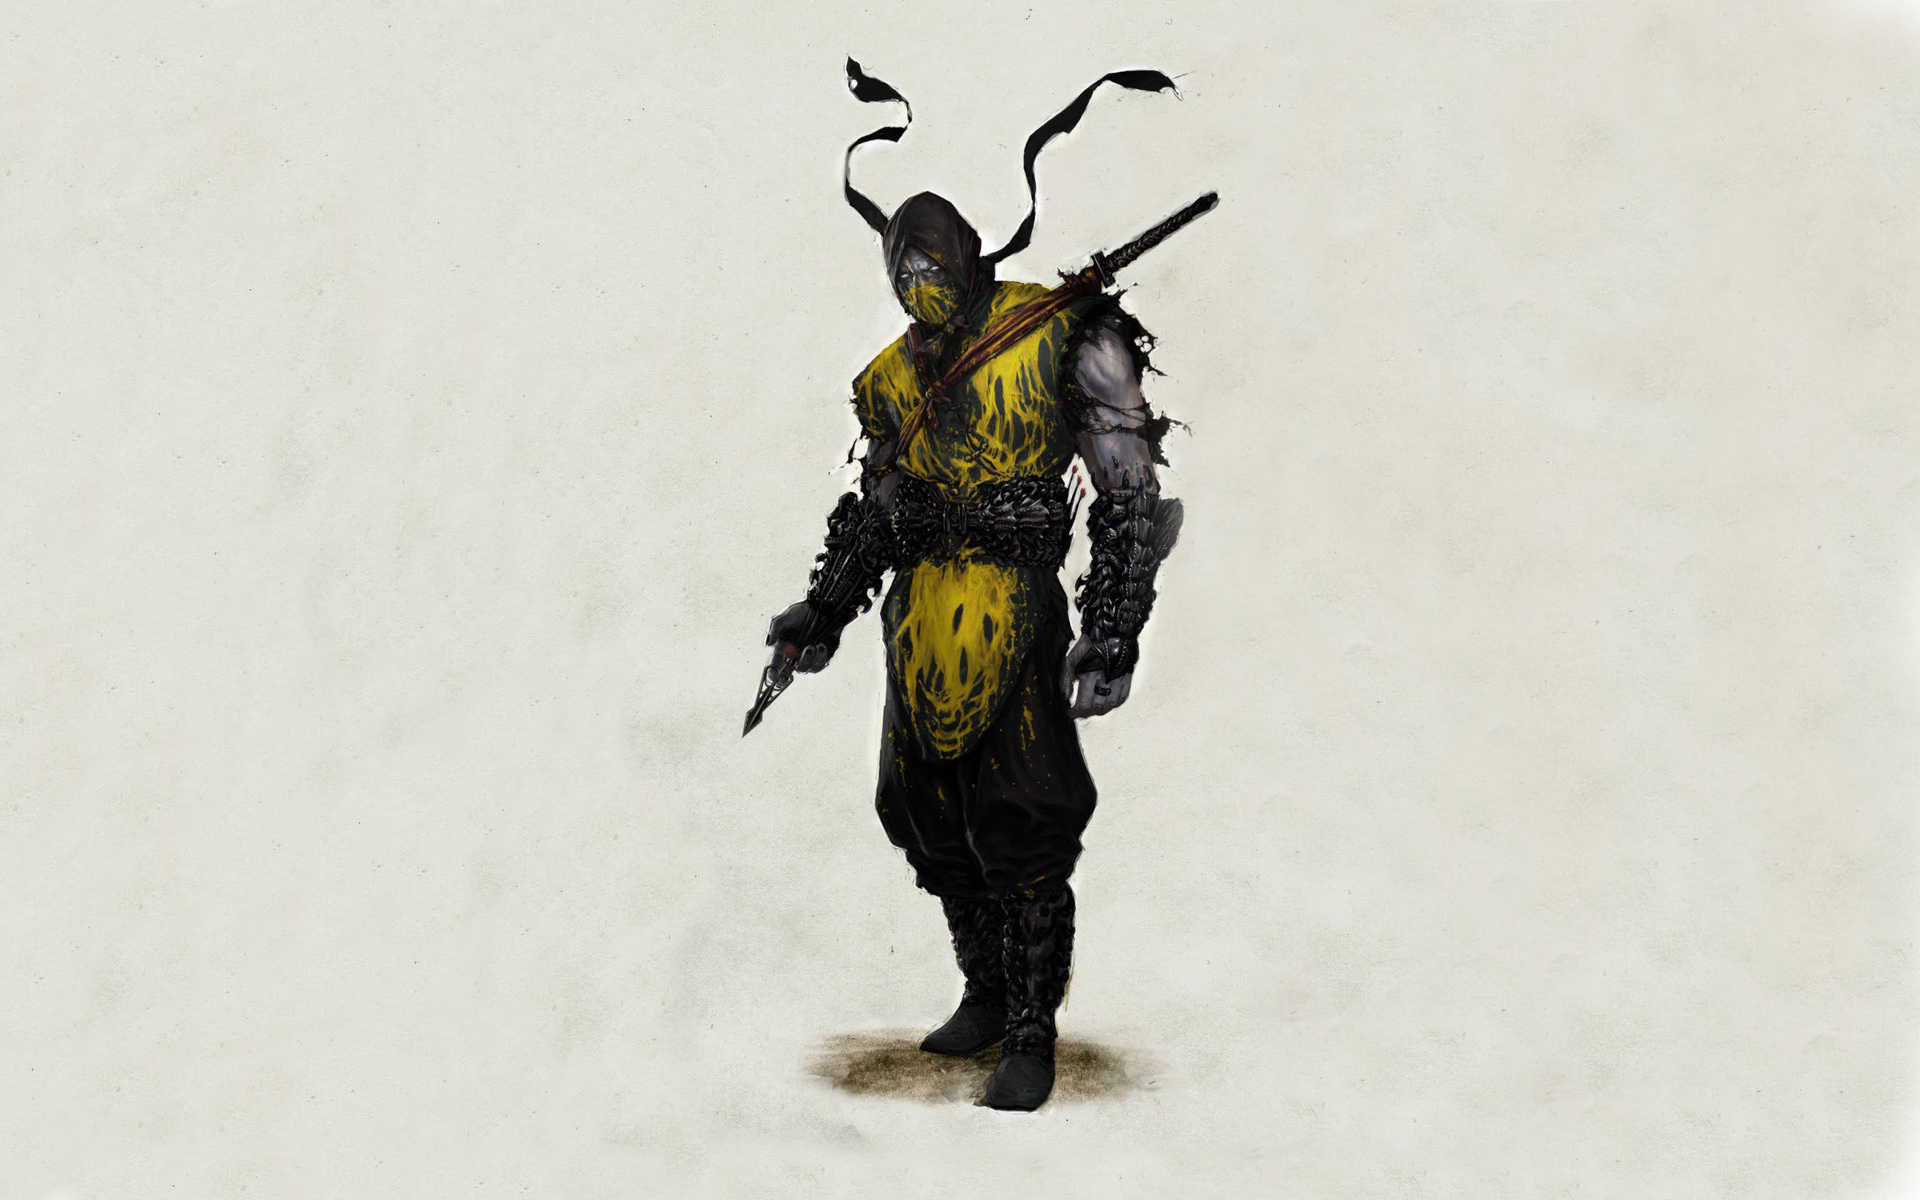 Mortal Kombat wallpaper Scorpion alone